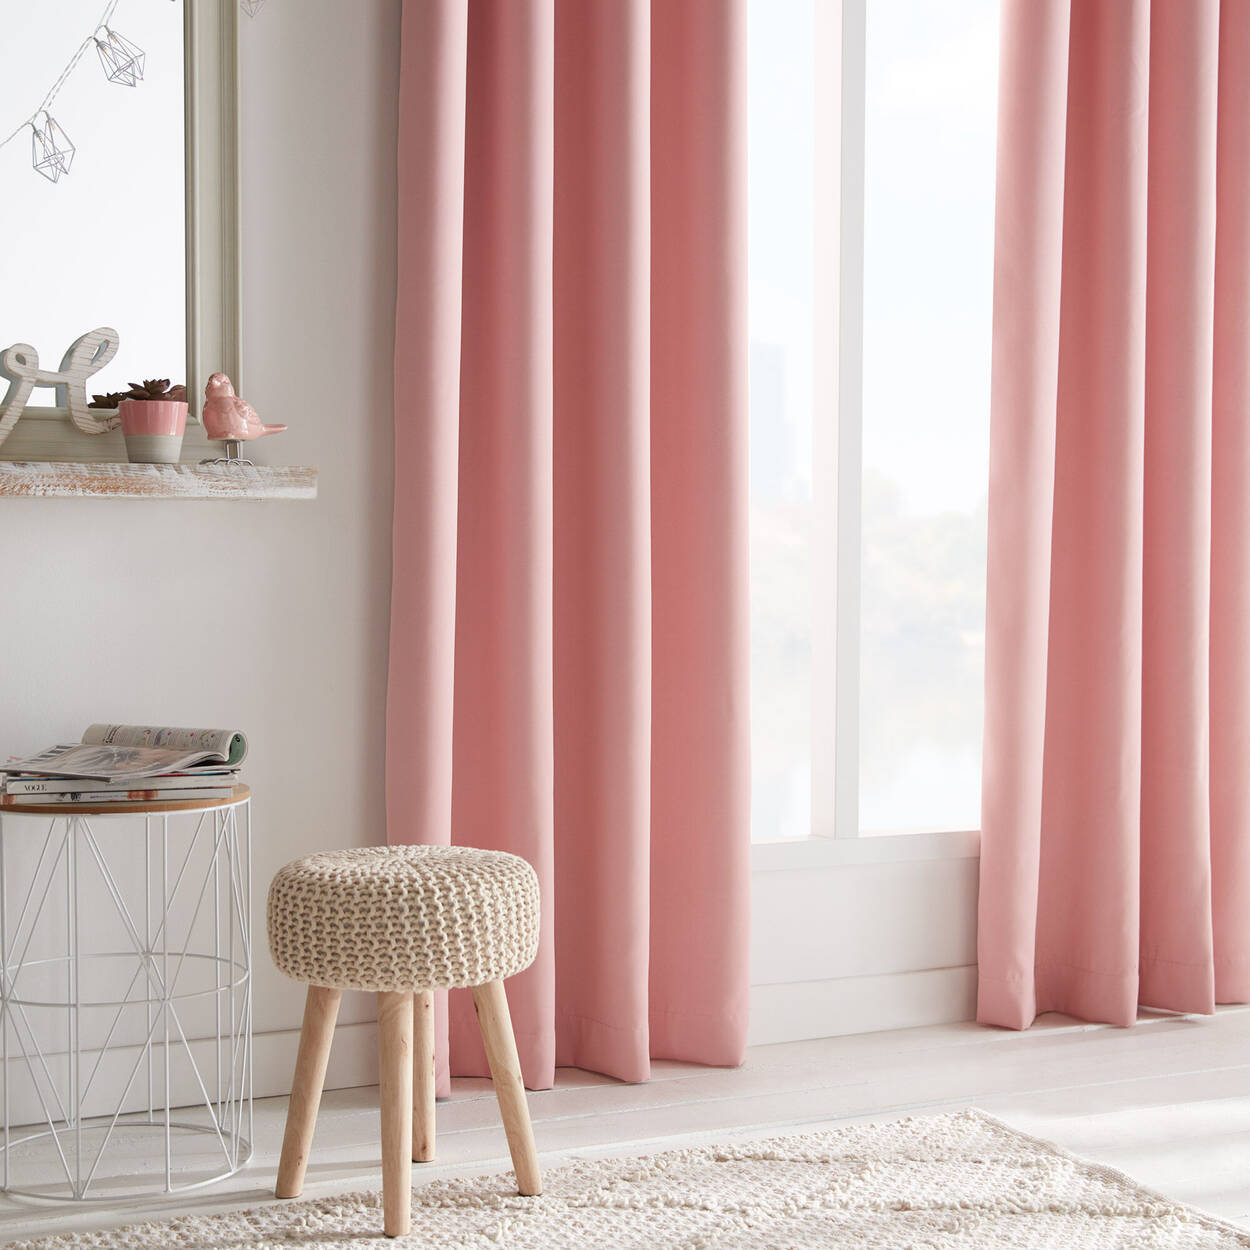 Amya Curtain